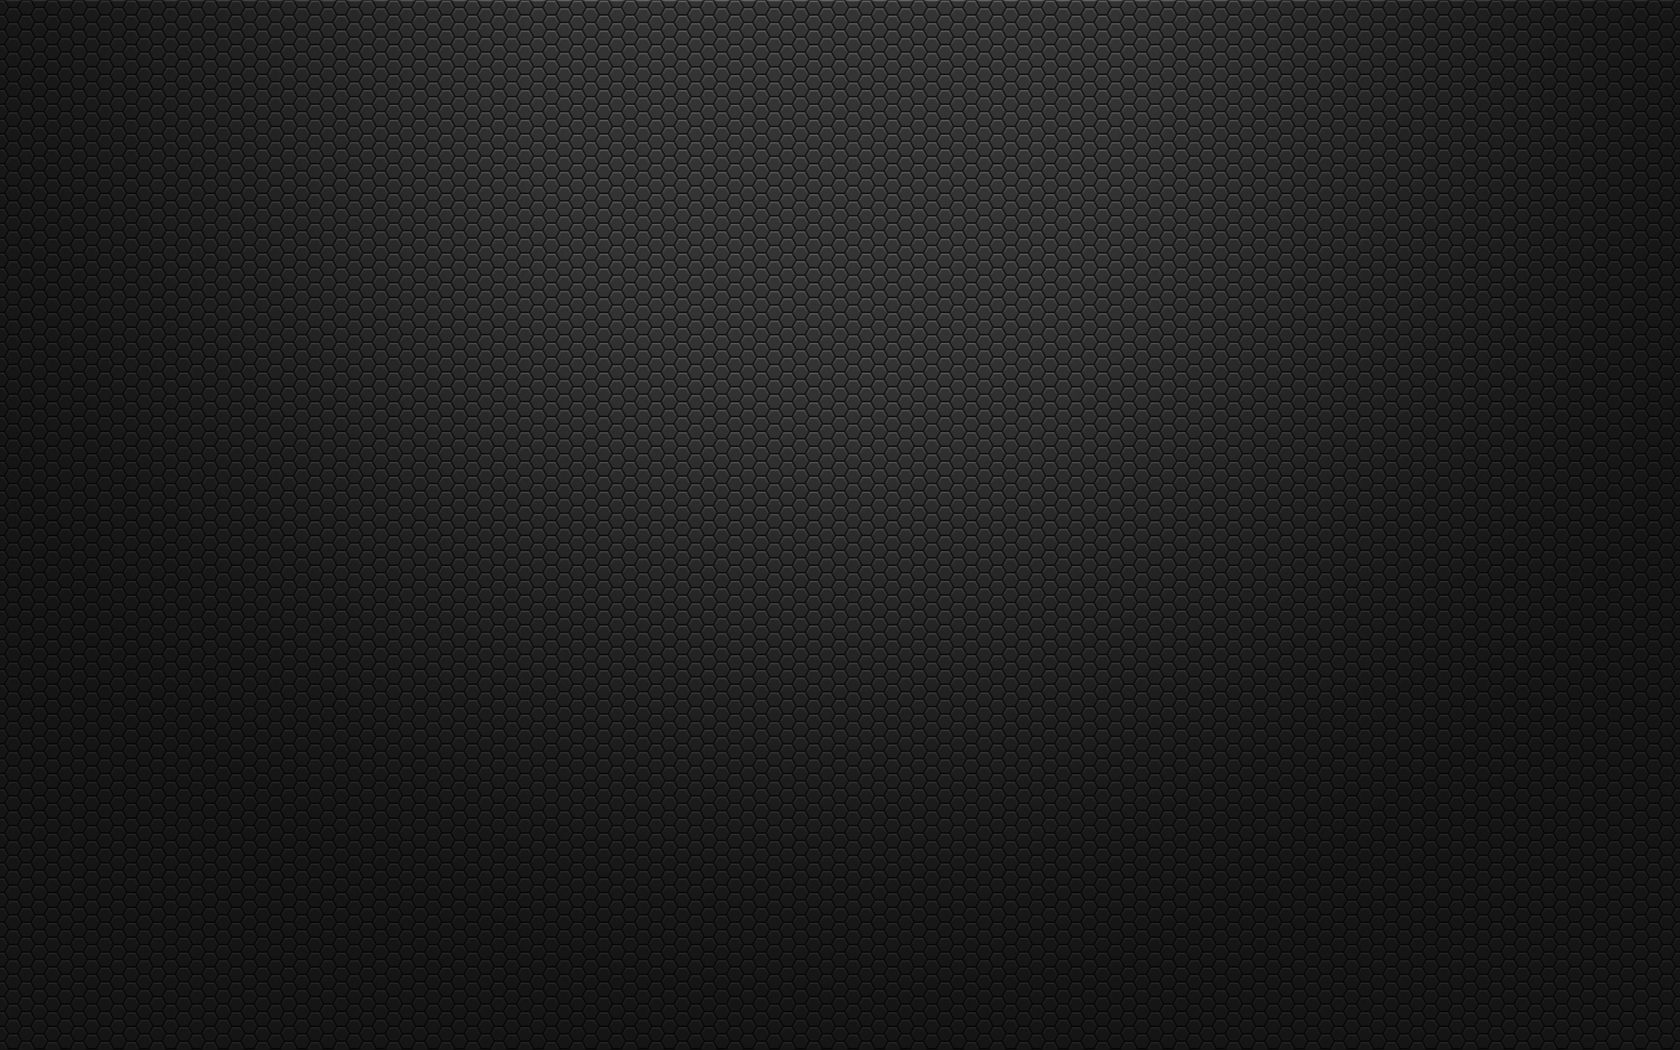 All Black Wallpaper Hd 15 Free Wallpaper ...